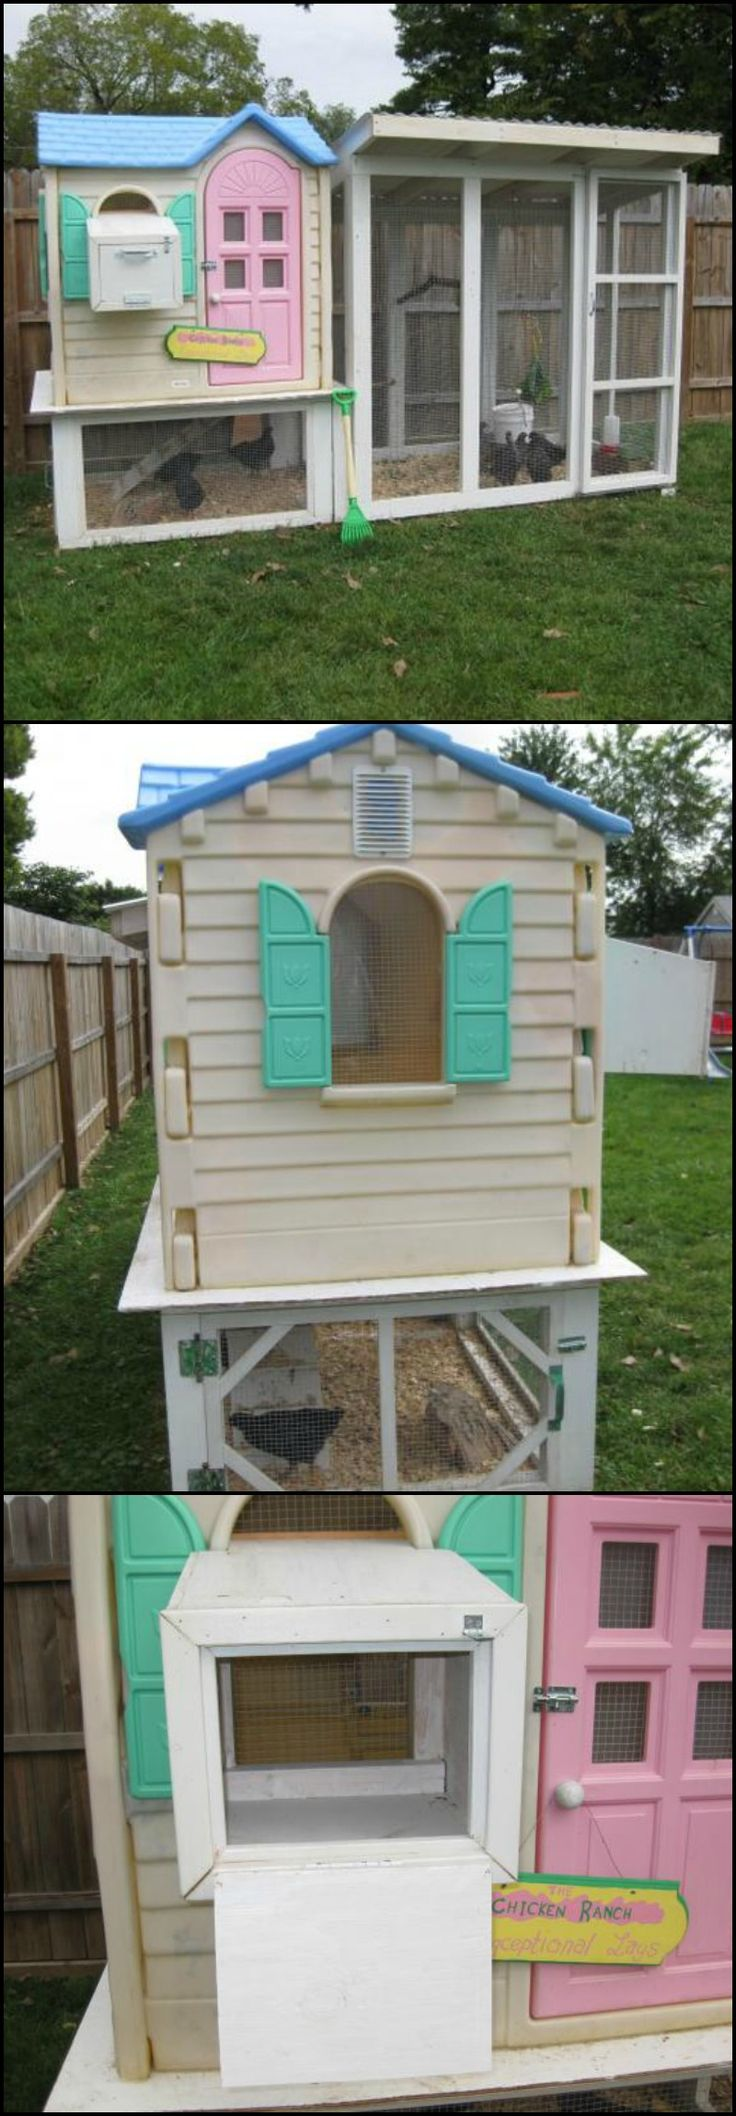 Want to build a chicken coop? Done a cost estimate? Realized you don't have enough money for it right now?  Well if you happen to have a playhouse no one is playing with anymore, you might have just found a solution...  http://diyprojects.ideas2live4.com/2016/01/27/turn-an-old-playhouse-into-a-chicken-coop/  With just a little bit of tweaking, you can now have a home for some backyard chickens!  Is this the cheap chicken coop idea for you?